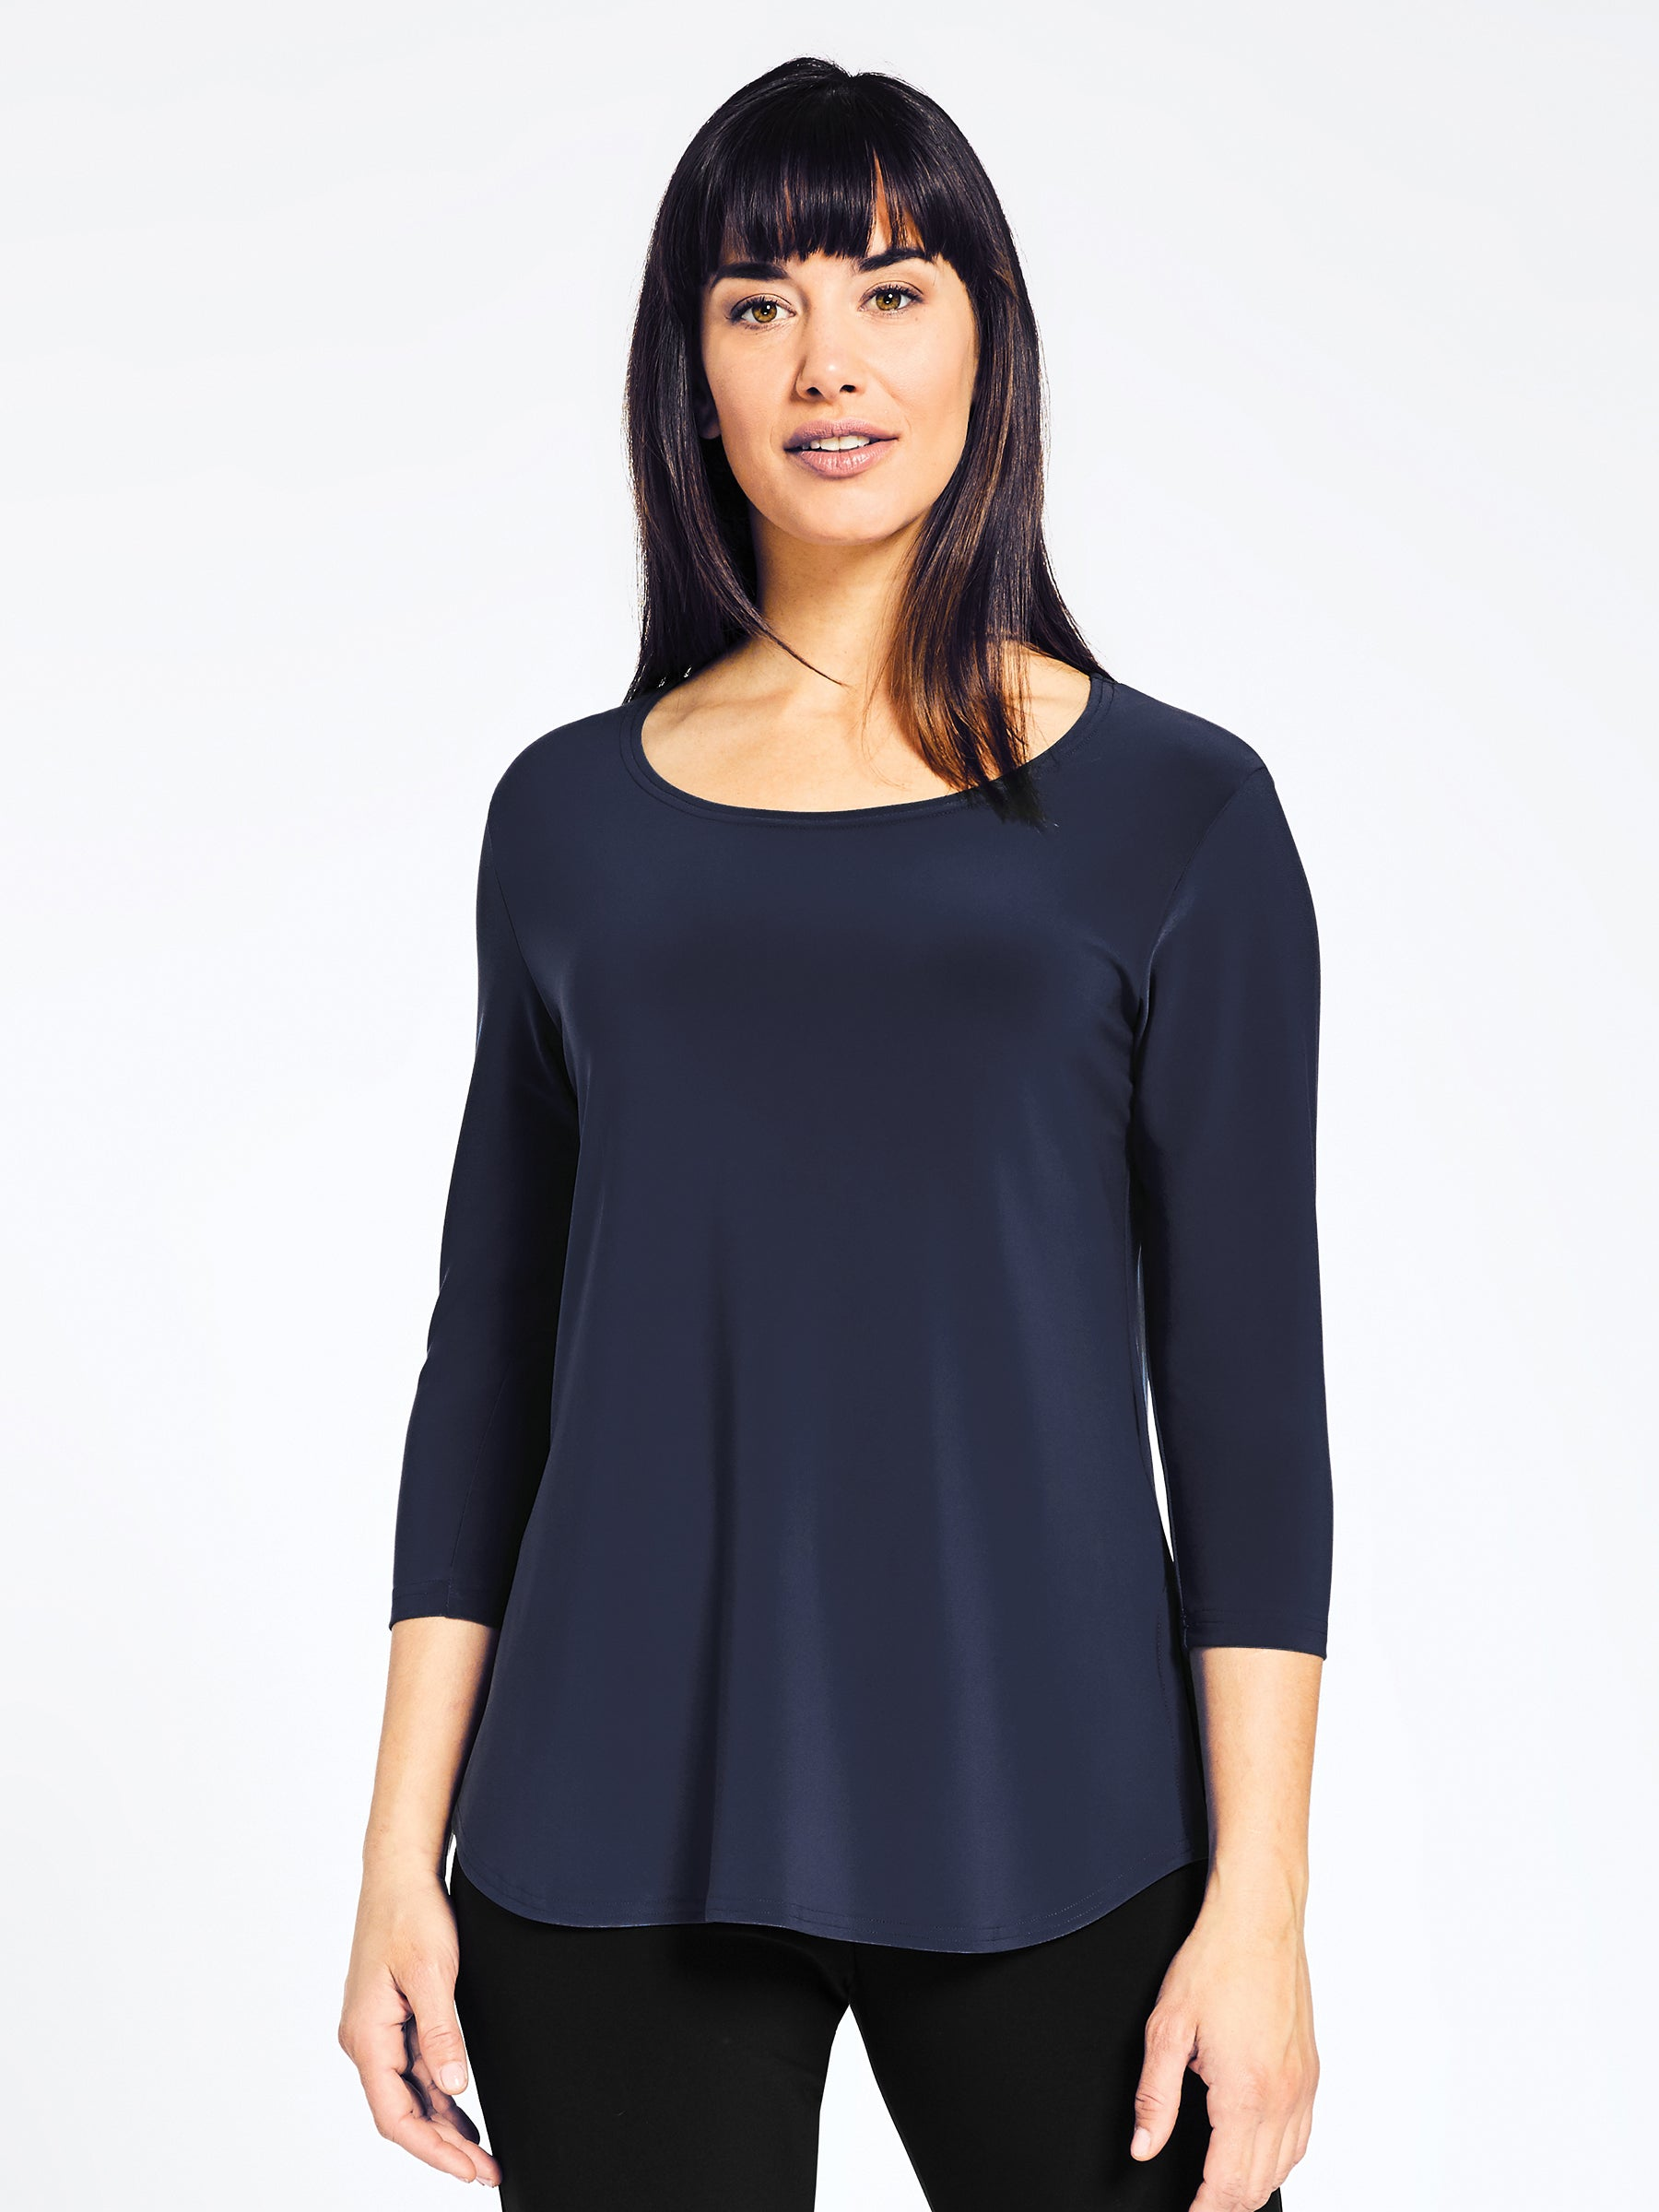 Sympli Go To Classic T Relax 3/4 Sleeve - Navy - Statement Boutique